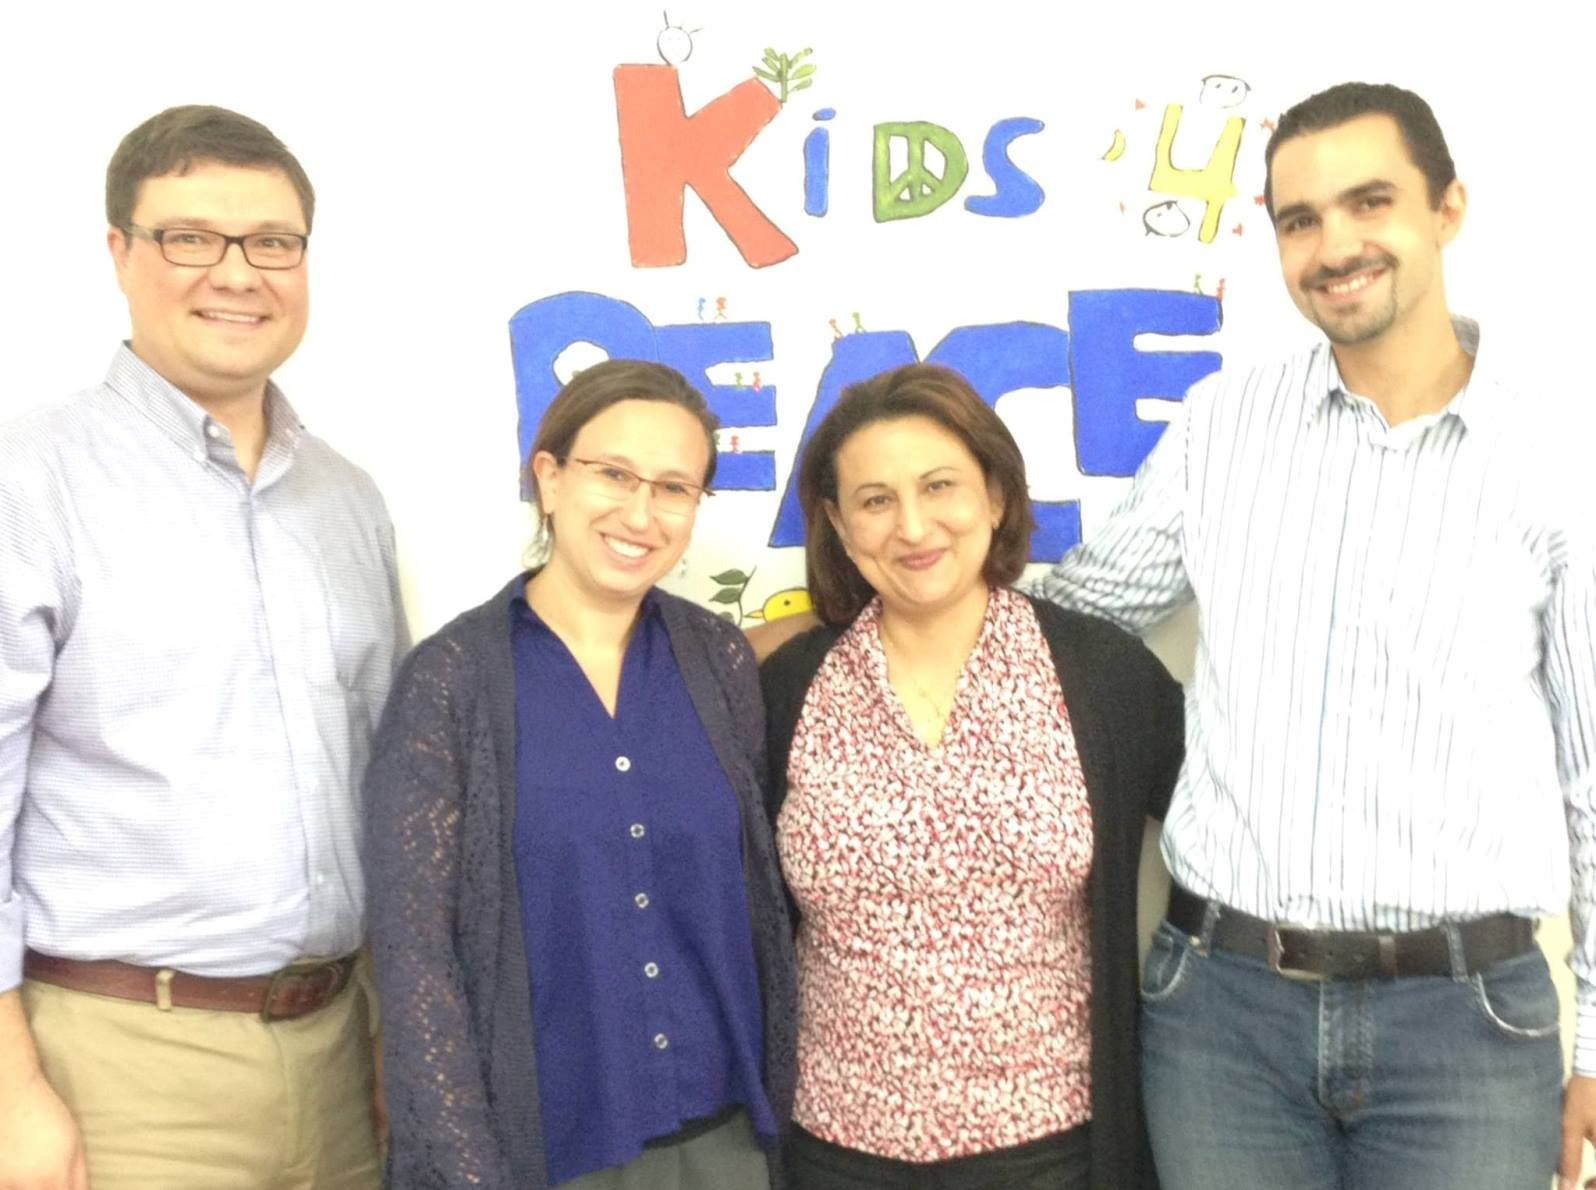 Kids4Peace Co-Directors Rebecca Sullum and Mohammad Joulany with Kids4Peace International Director Rev. Josh Thomas and Alliance for Middle East Peace Director Huda Abuarquob. Photo: courtesy